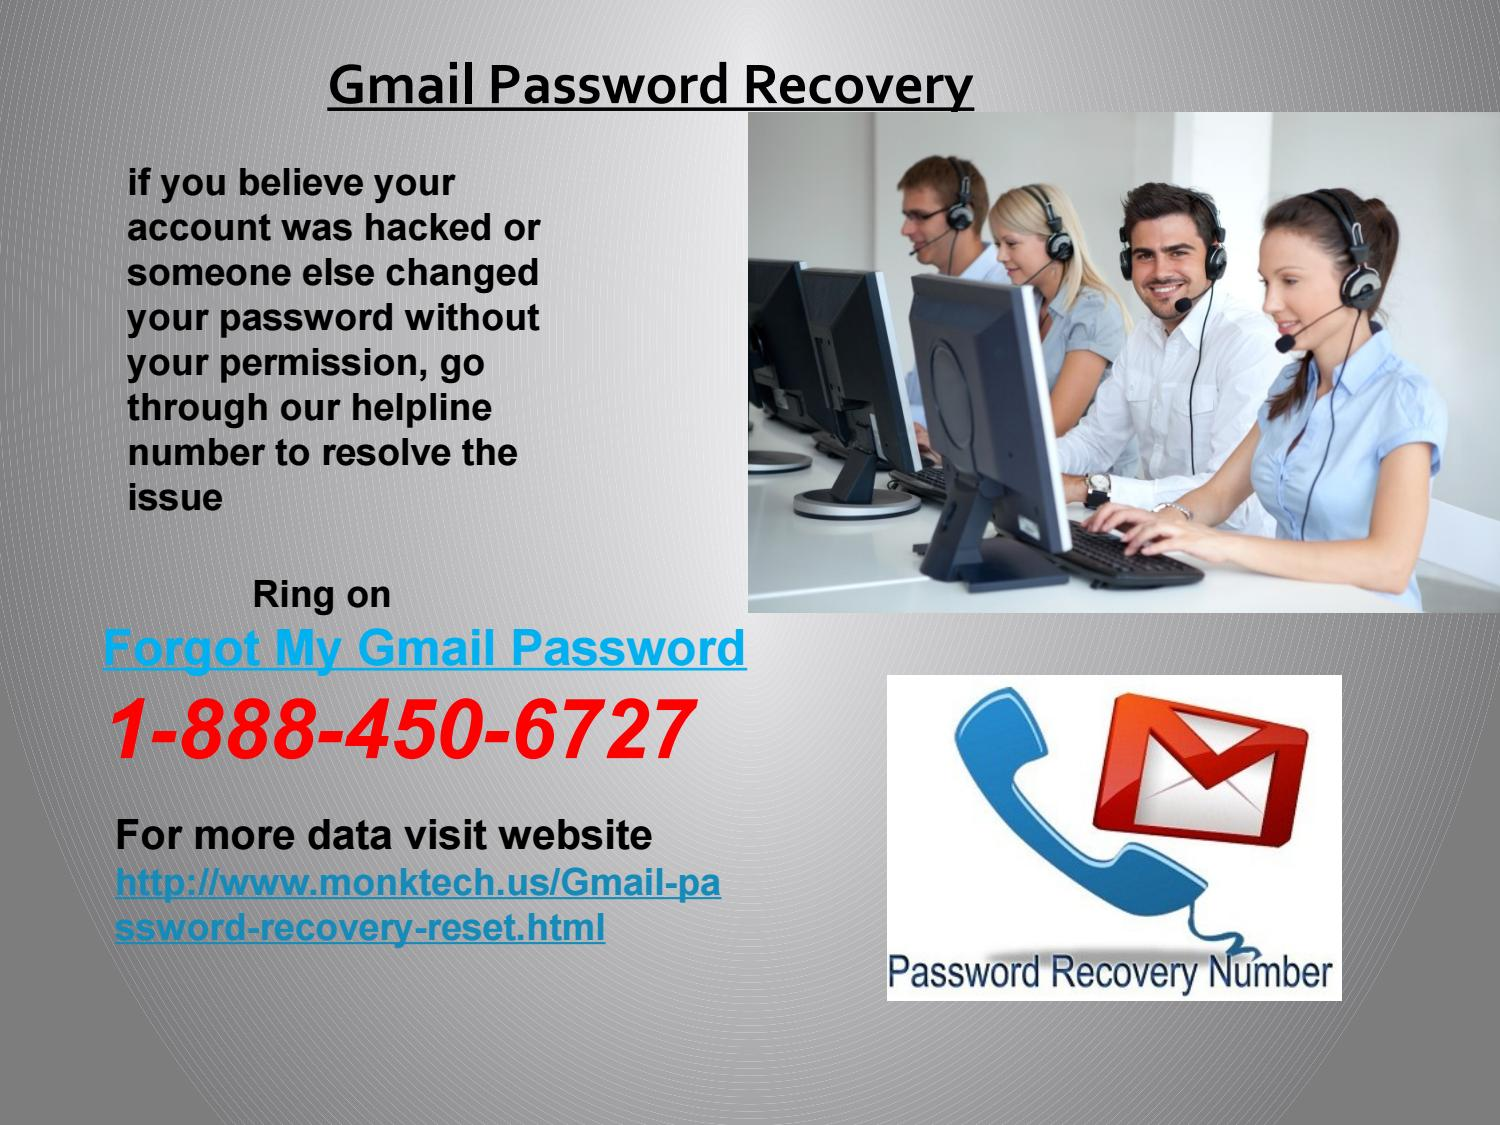 23 Answers - How to recover my Gmail password without